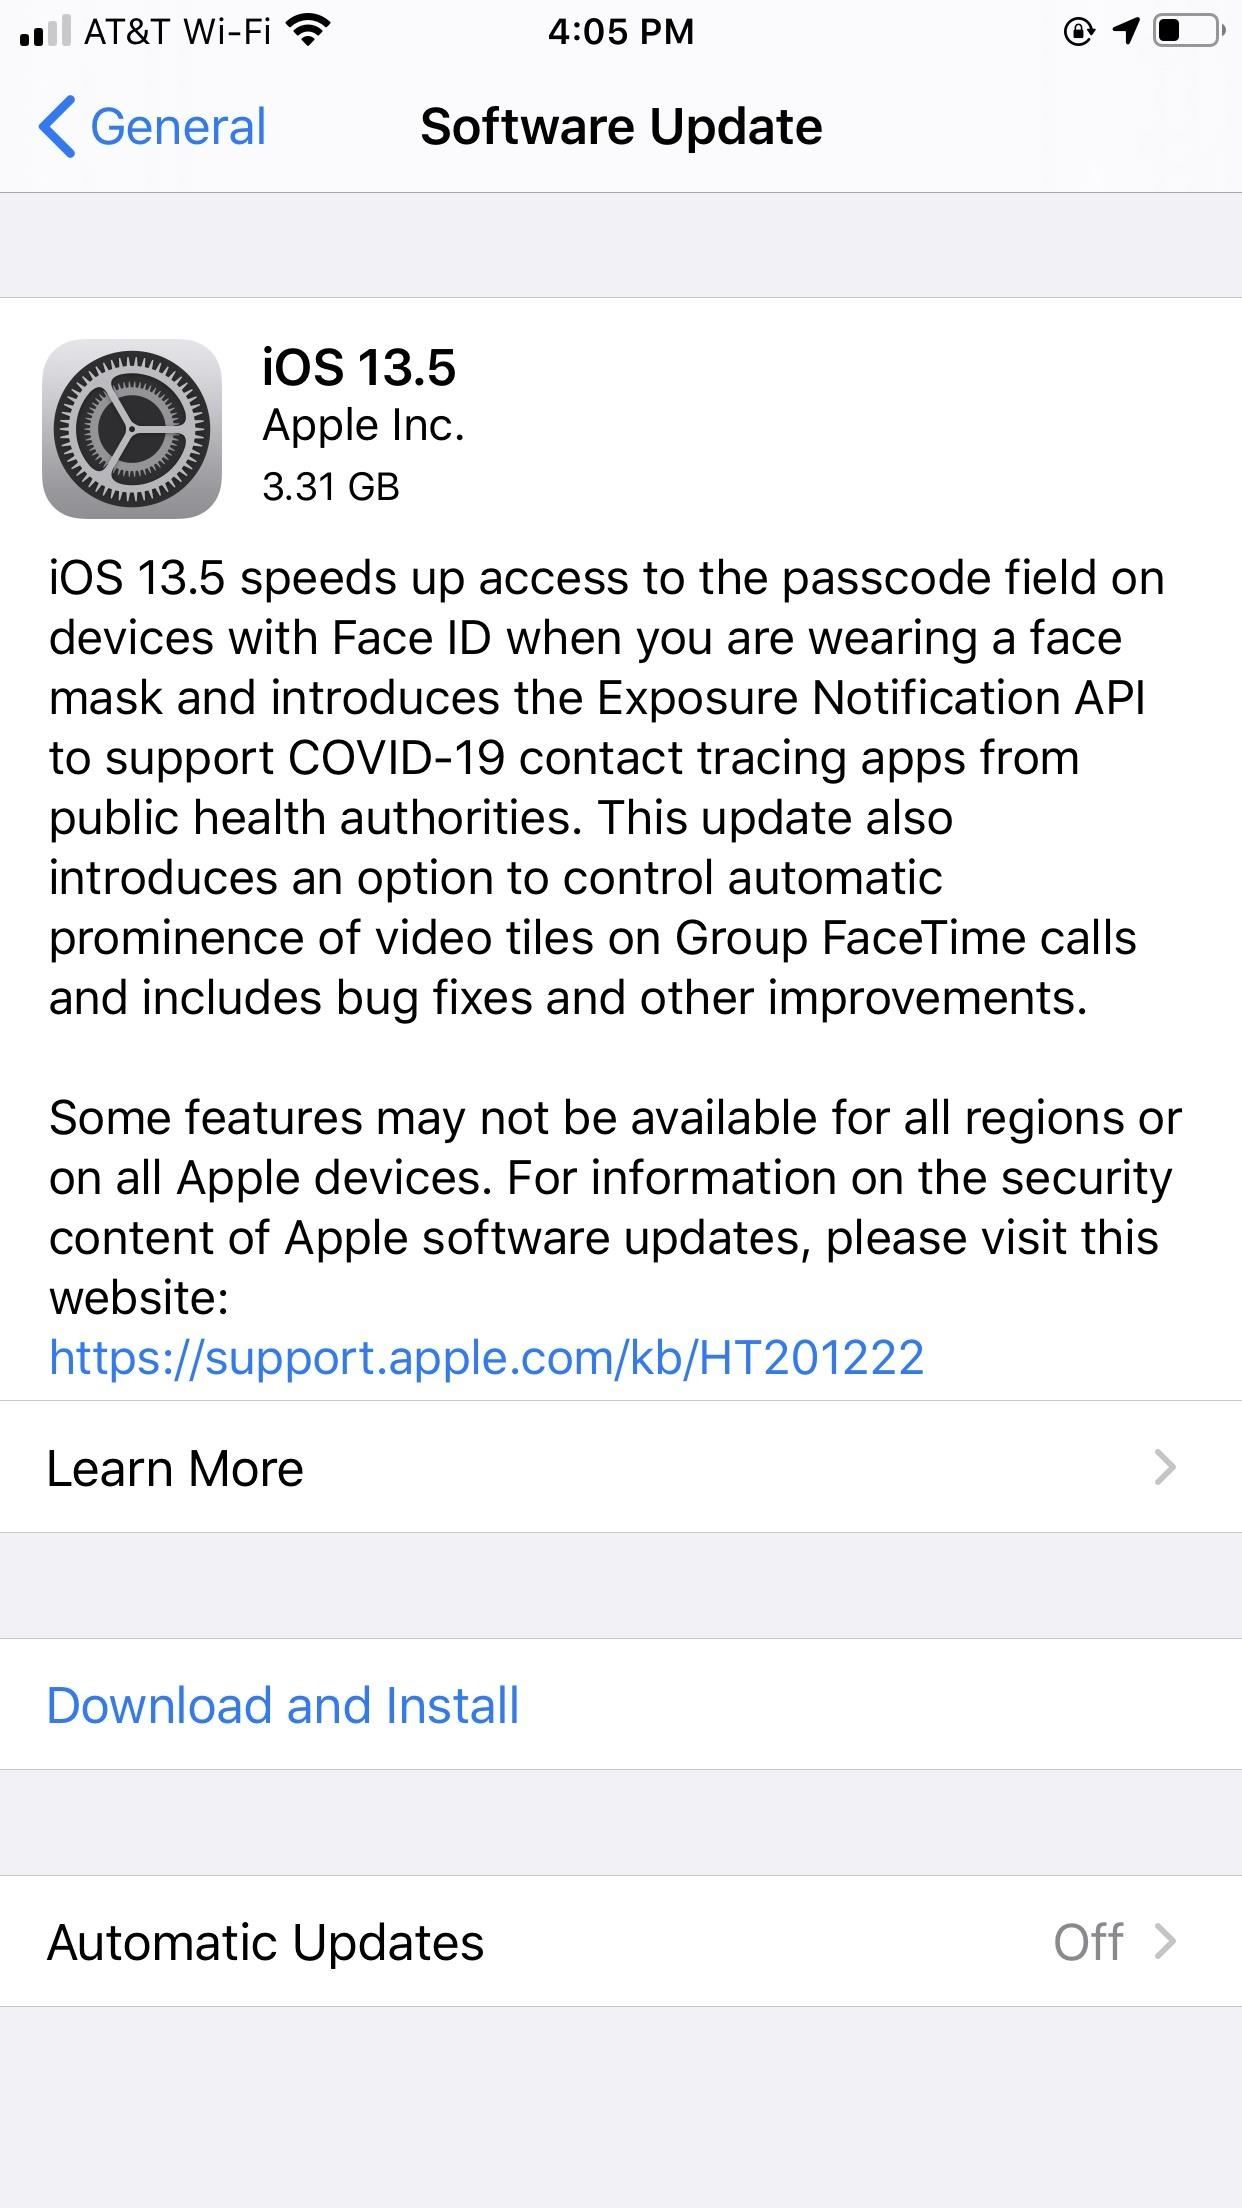 Apple Releases iOS 13.5 for Public Beta Testers, Includes Updates to Face ID, COVID-19 Exposure Notifications & More